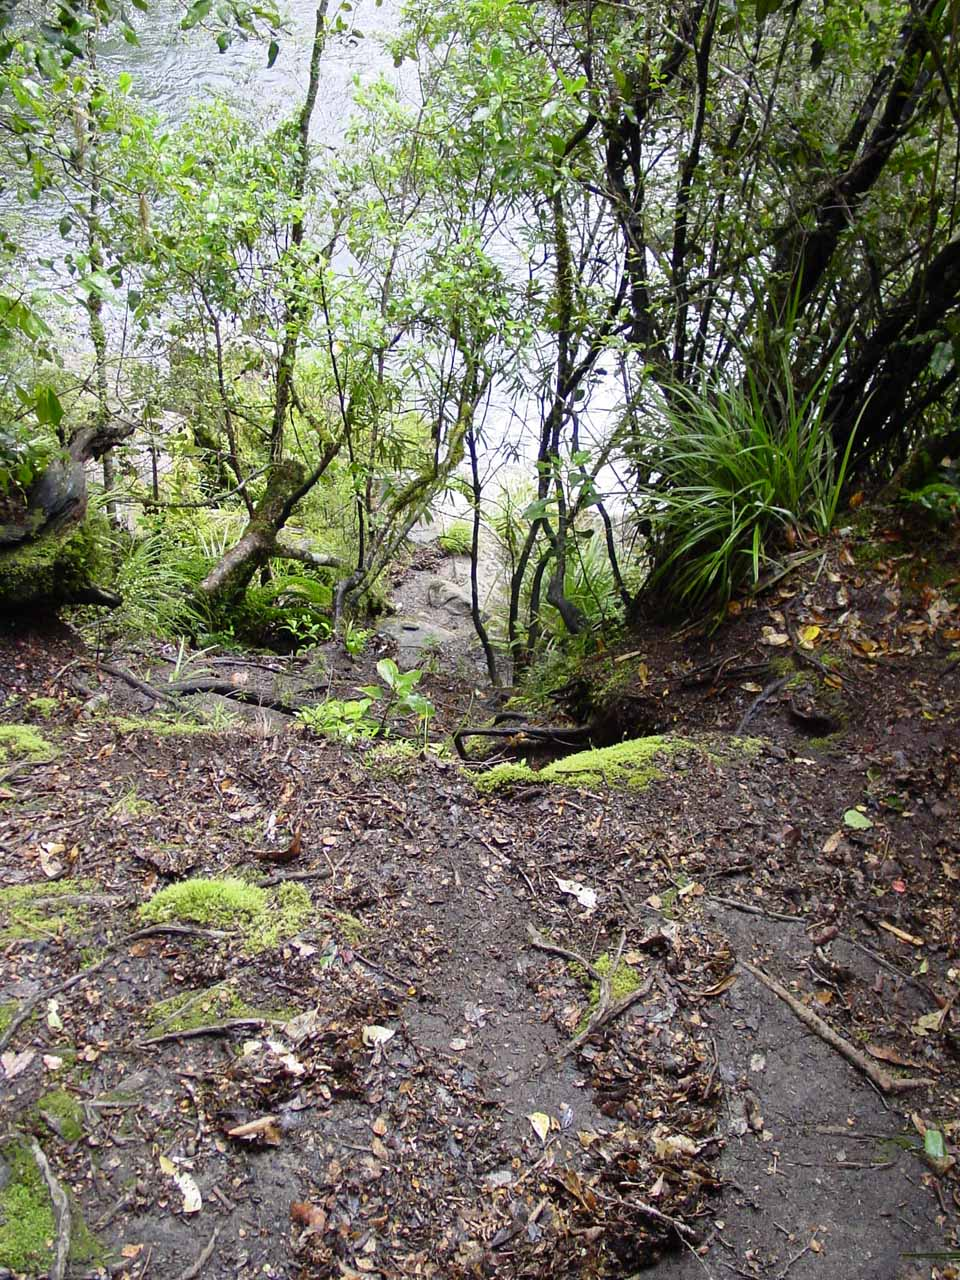 This was where I stopped on the very steep and eroded path to a view of the Aniwaniwa Falls